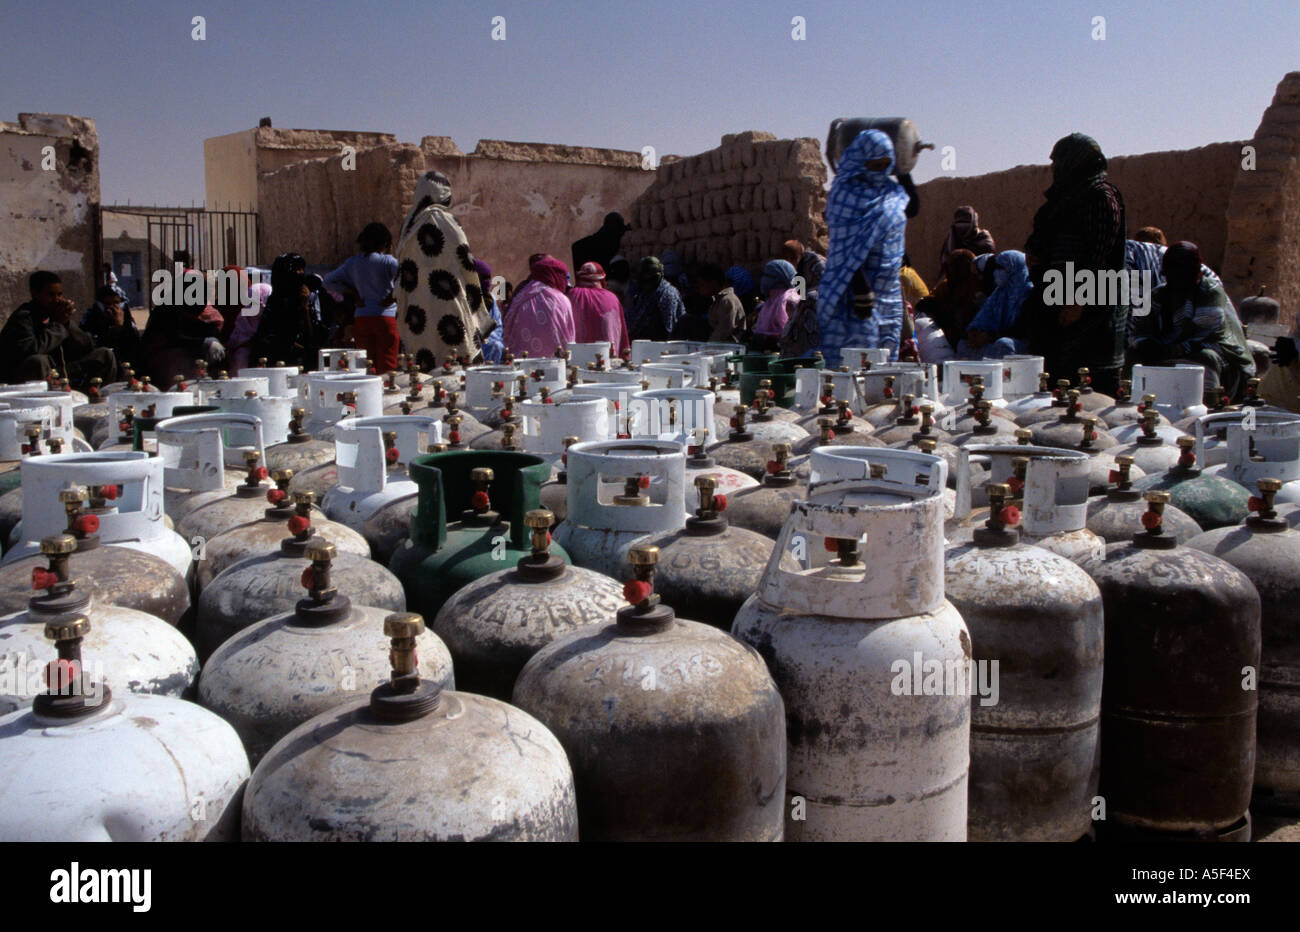 People from the Saharawi refugee camp in Tindouf Western Algeria collecting gas bottles - Stock Image